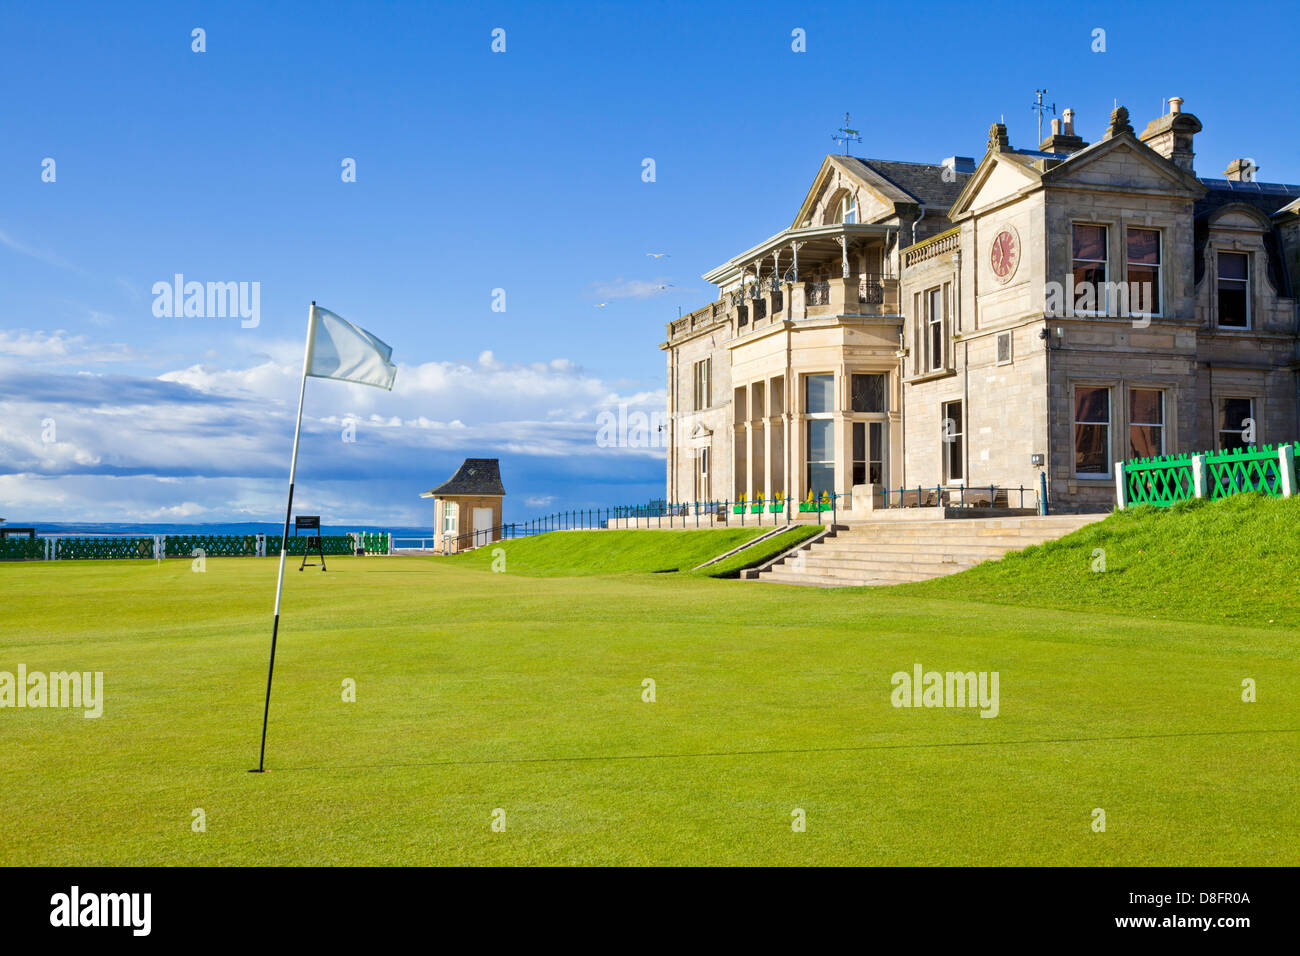 The Royal and Ancient Golf Club of St Andrews golf course and club house St Andrews Fife Scotland UK GB EU Europe - Stock Image